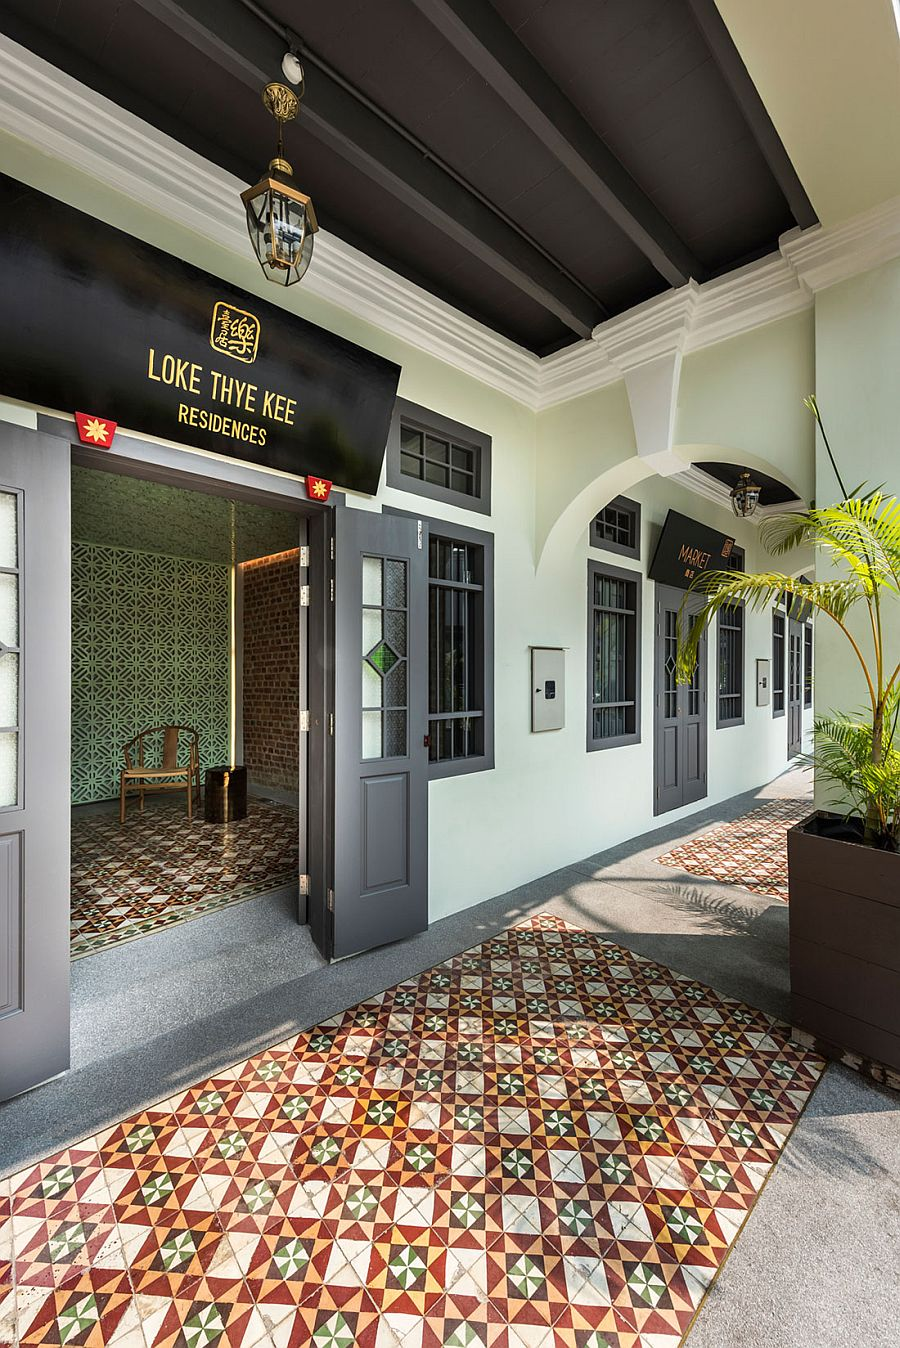 Loke Thye Kee Residences in Malaysia combines heritage with modern amenities Loke Thye Kee Residences: Recapturing Historic Penang with Modern Zest